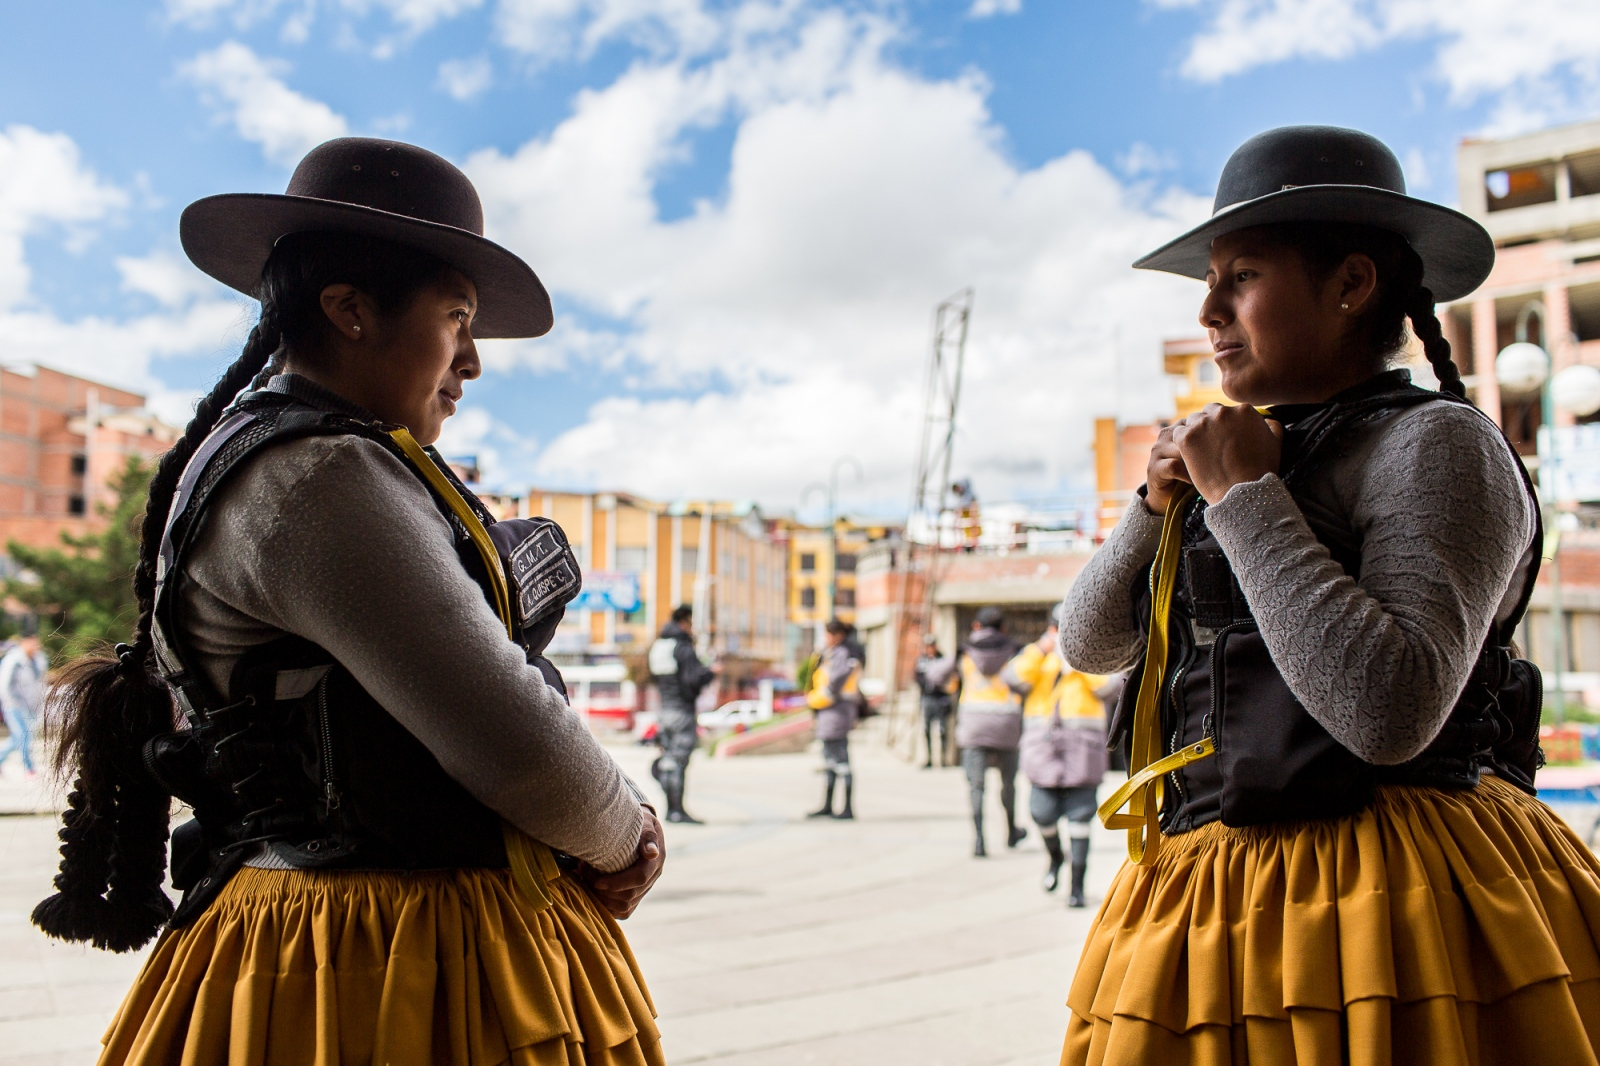 "Estela Loyaza (right) talks with A. Quispe, a fellow traffic warden in El Alto. Estela is one of the 15 ""cholitas"" who work as traffic wardens in the city. Since 2013, the municipality government has been hiring cholitas to control the chaotic traffic of the city."